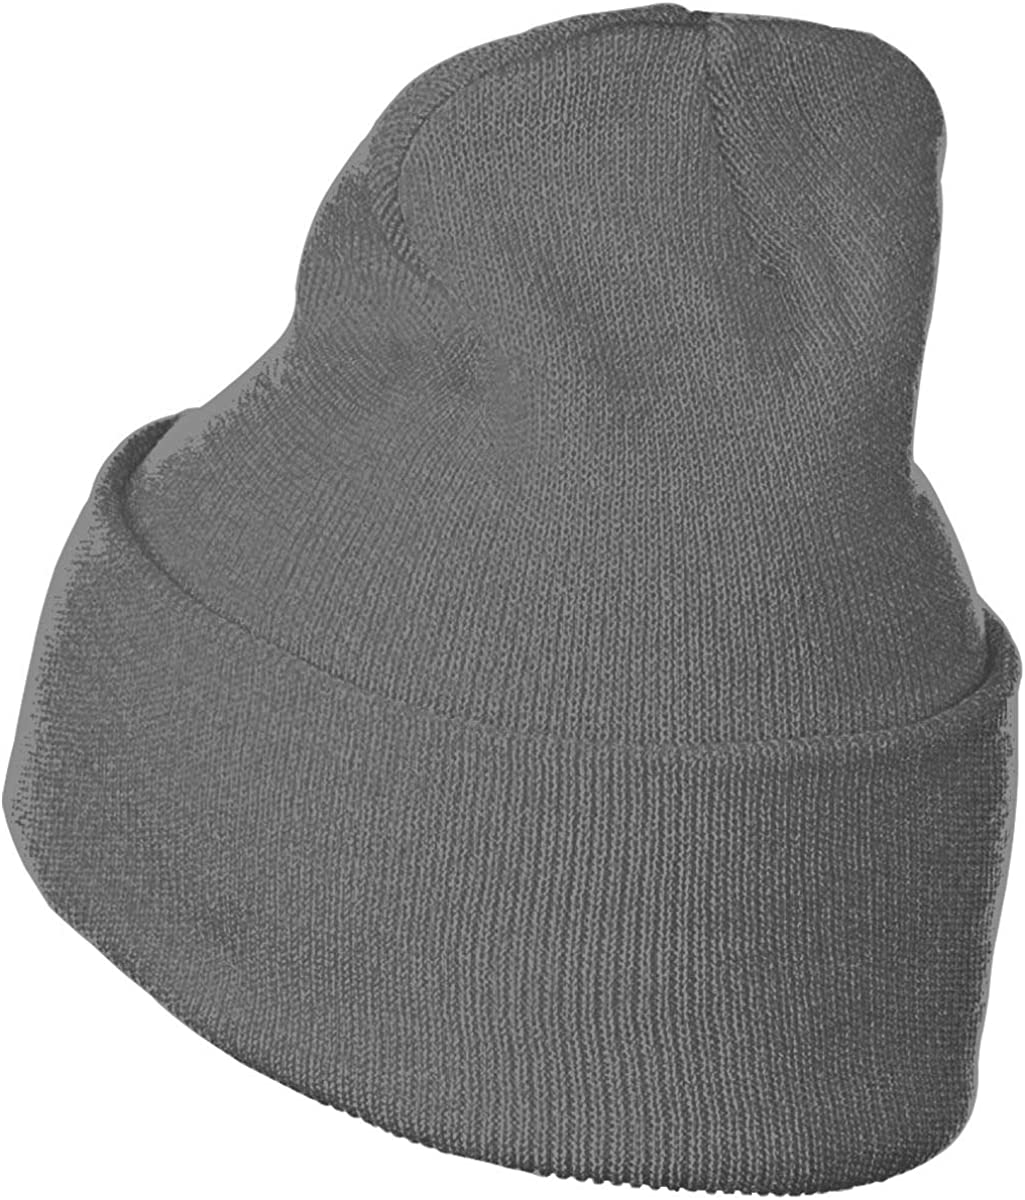 SLADDD1 Bobsleigh Warm Winter Hat Knit Beanie Skull Cap Cuff Beanie Hat Winter Hats for Men /& Women Deep Heather